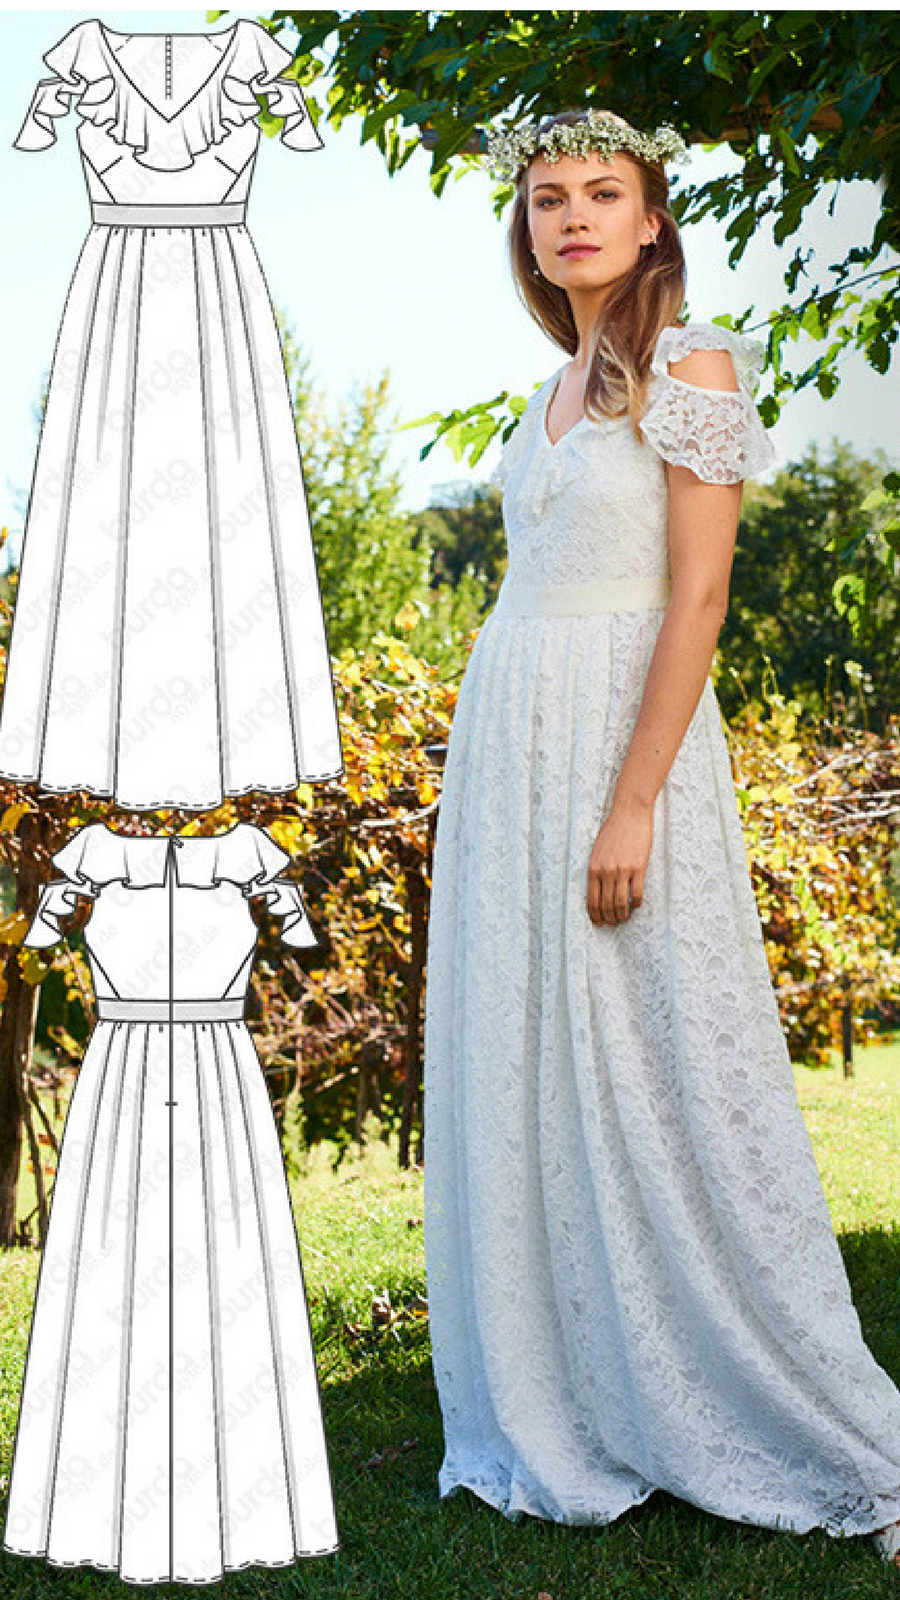 Women S Lace Wedding Dress Sewing Pattern Available For Download Available In Vari Wedding Dress Sewing Patterns Sewing Dresses For Women Sewing Wedding Dress